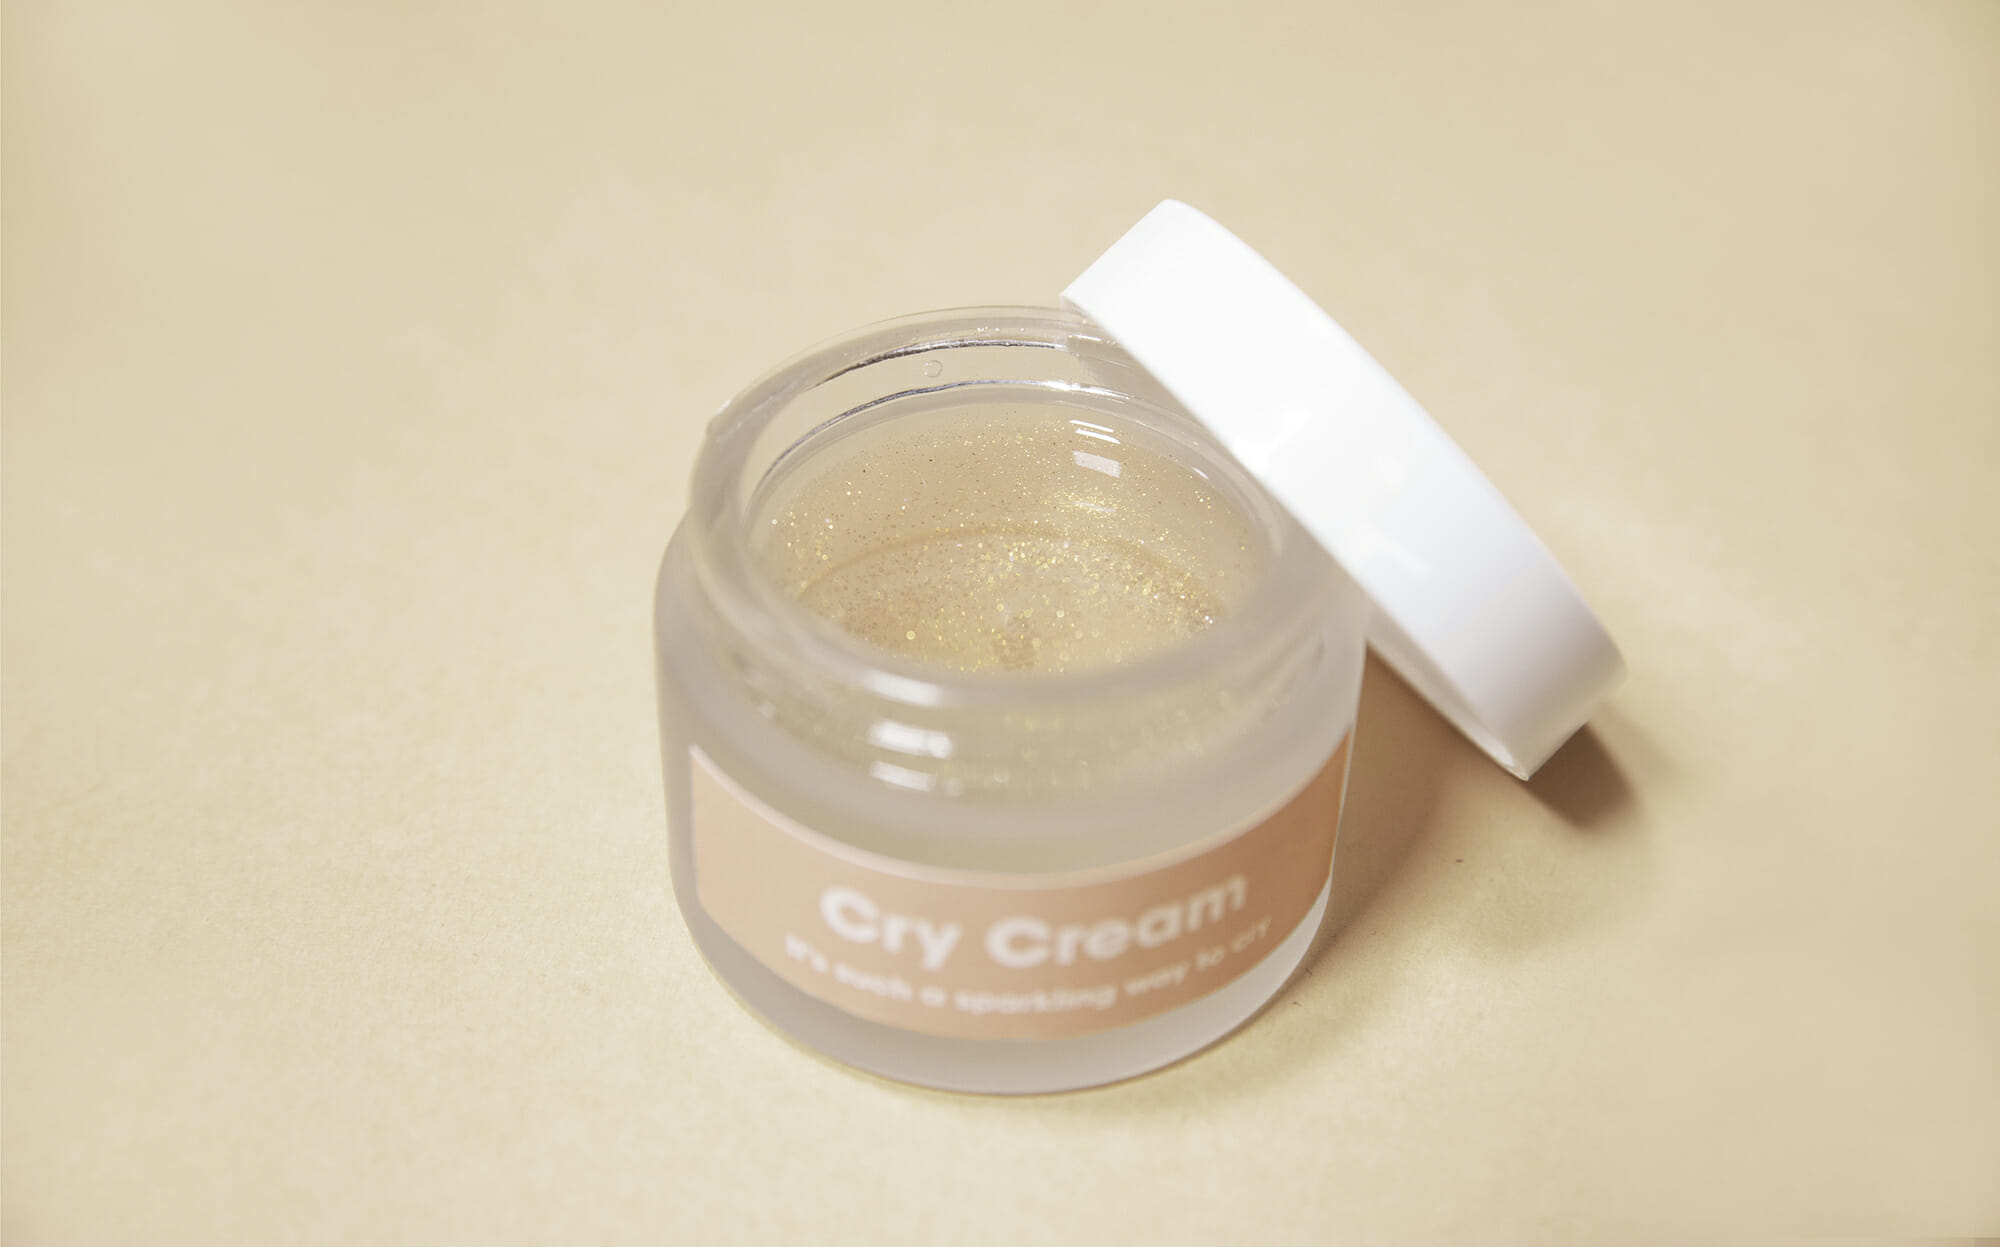 Cry cream - glitters to protect your skin